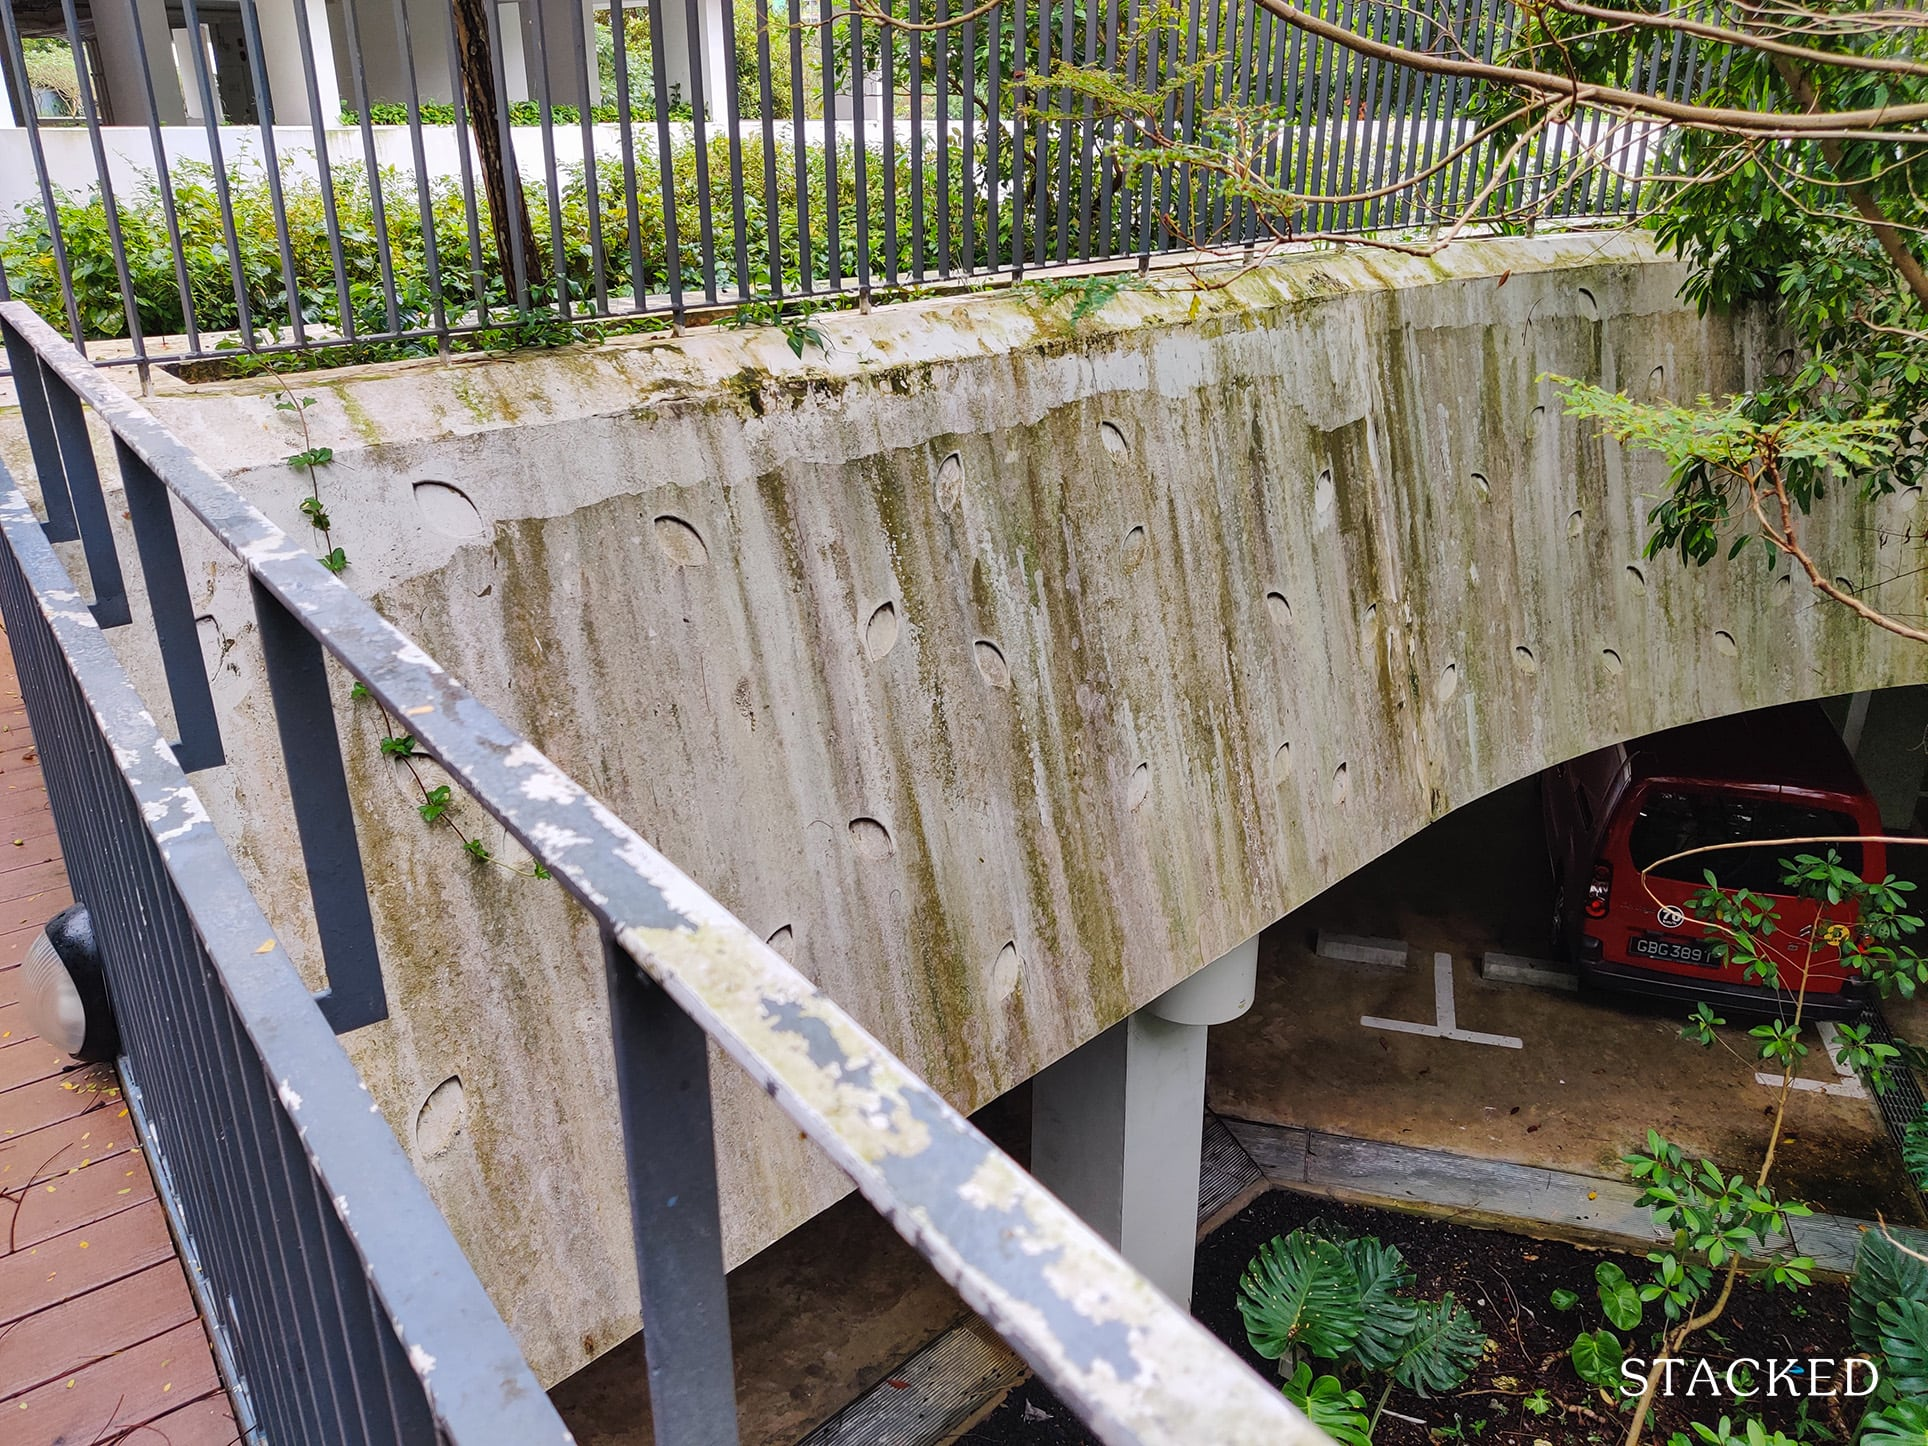 punggol waterway terraces poorly maintained